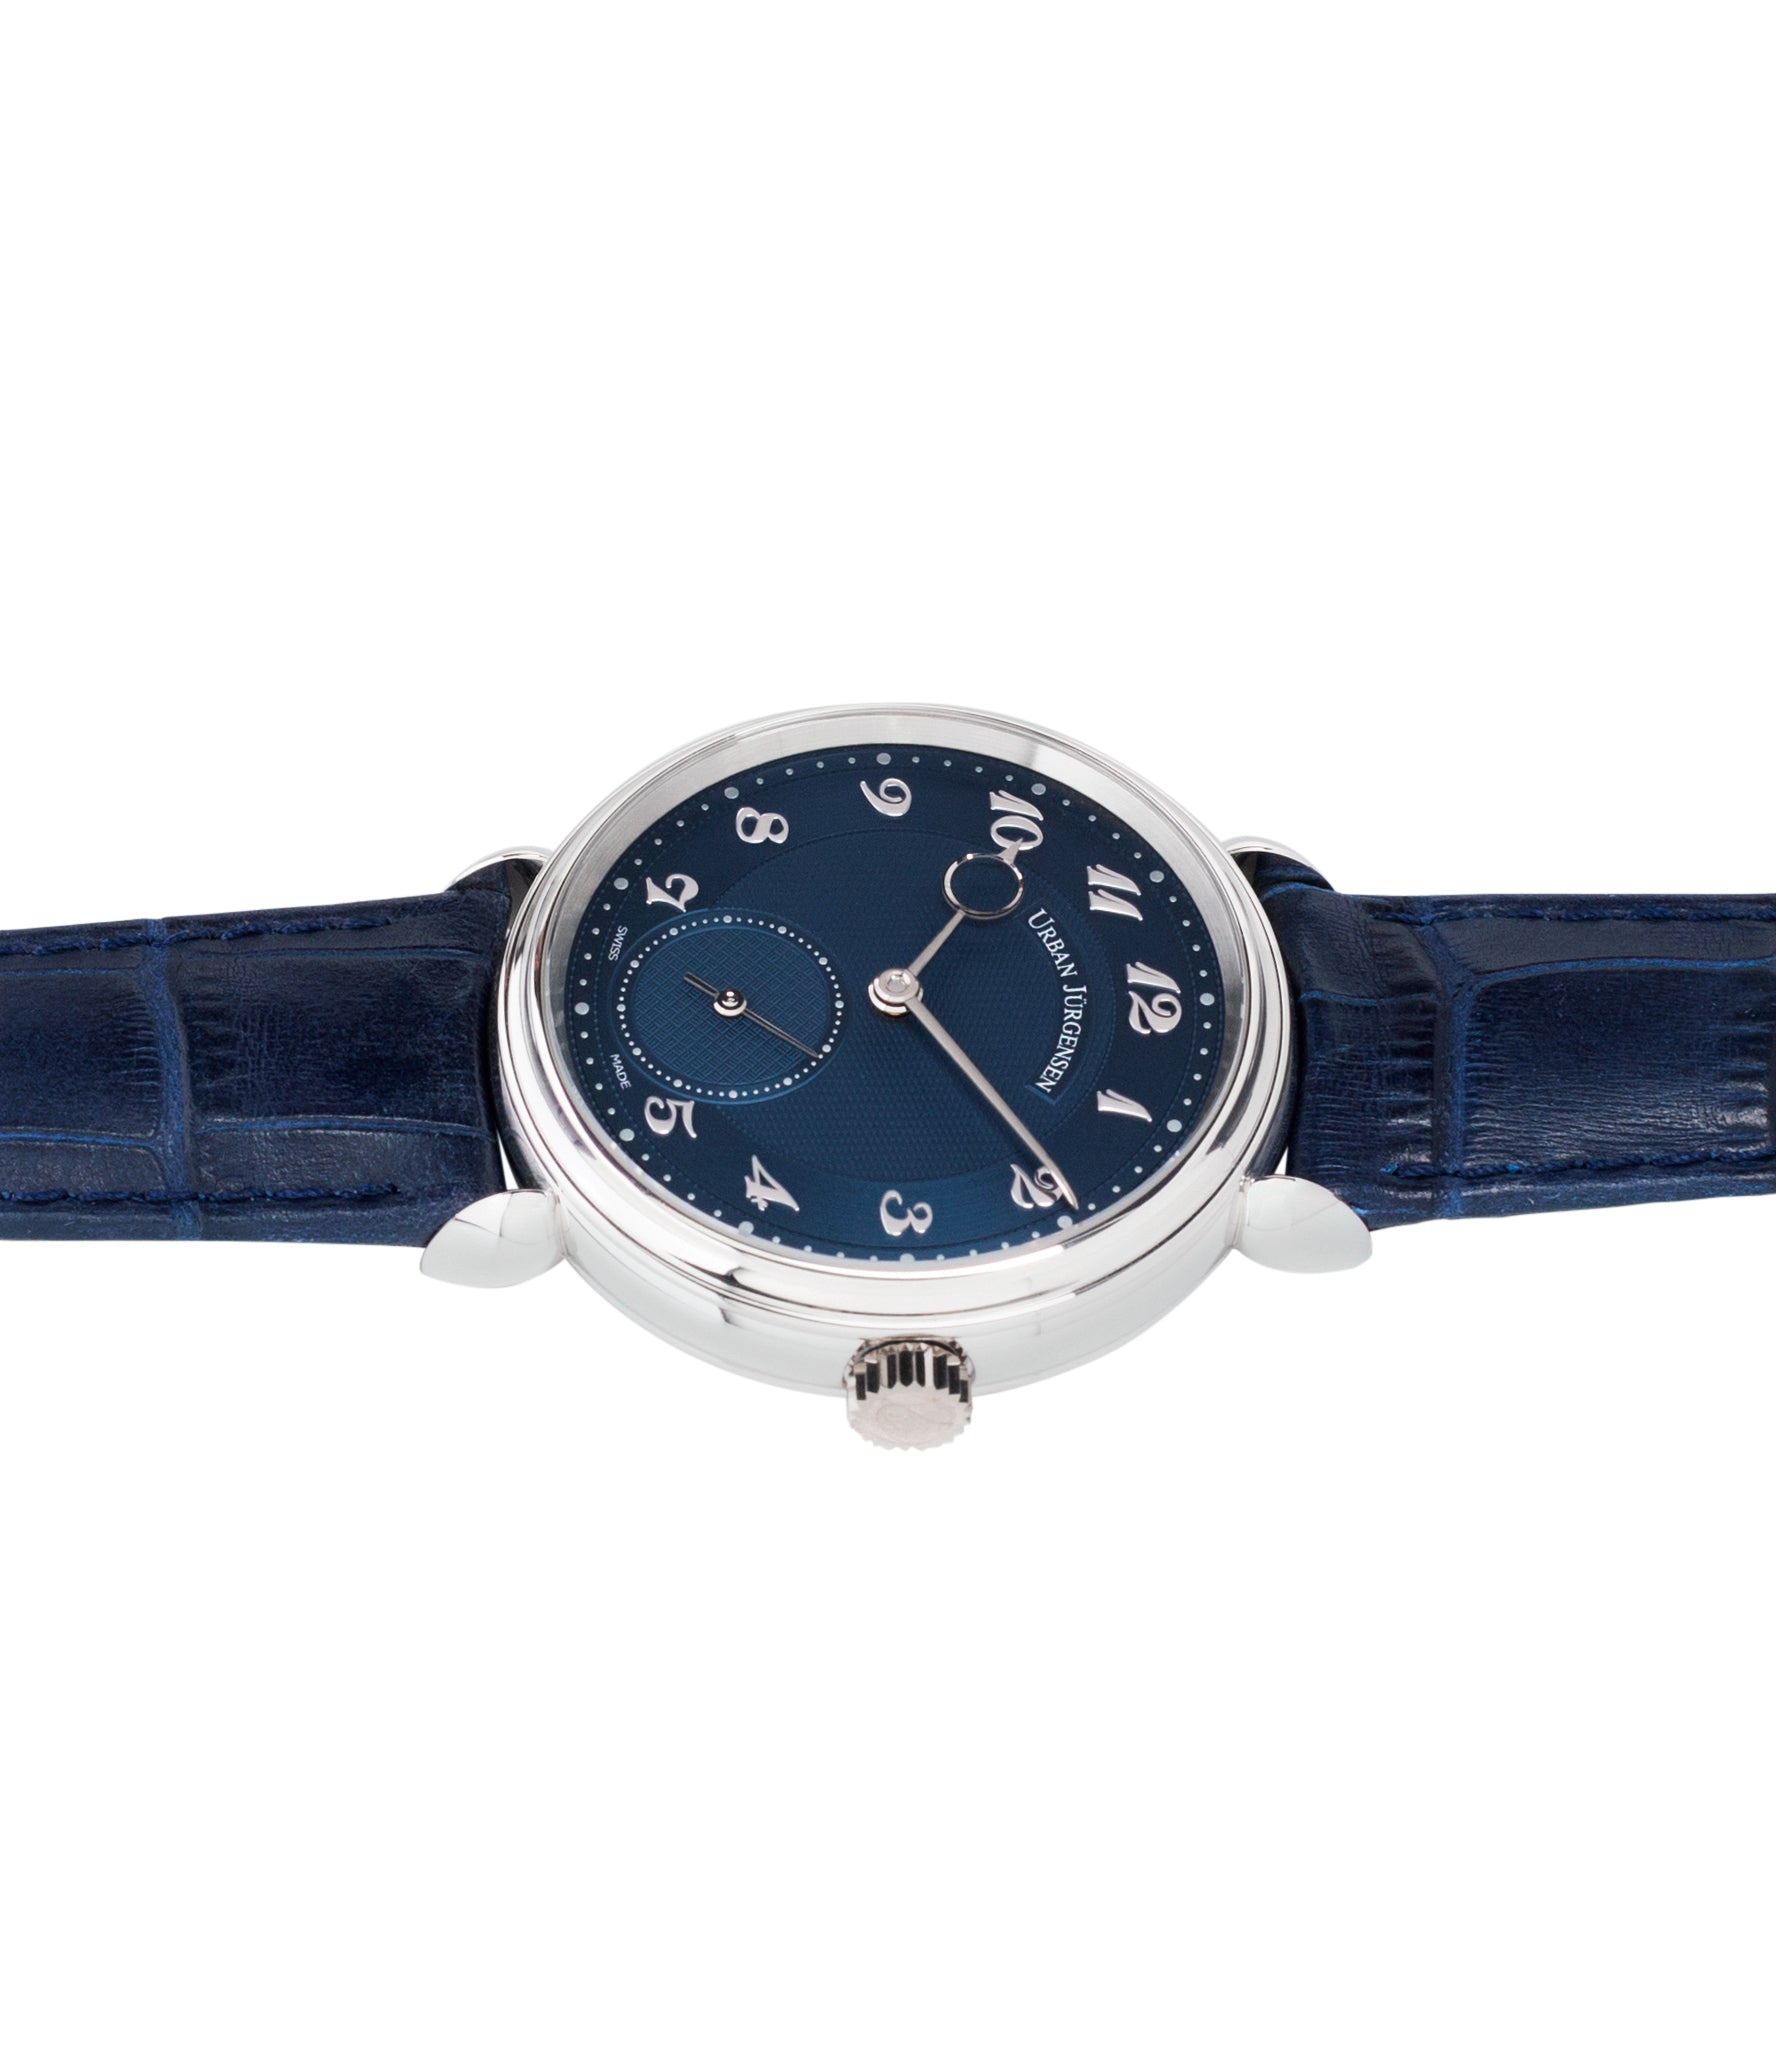 luxury dress watch Urban Jurgensen 1140 PT Blue dial watch online at A Collected Man London independent watchmaker specialist authorised retailer in the UK